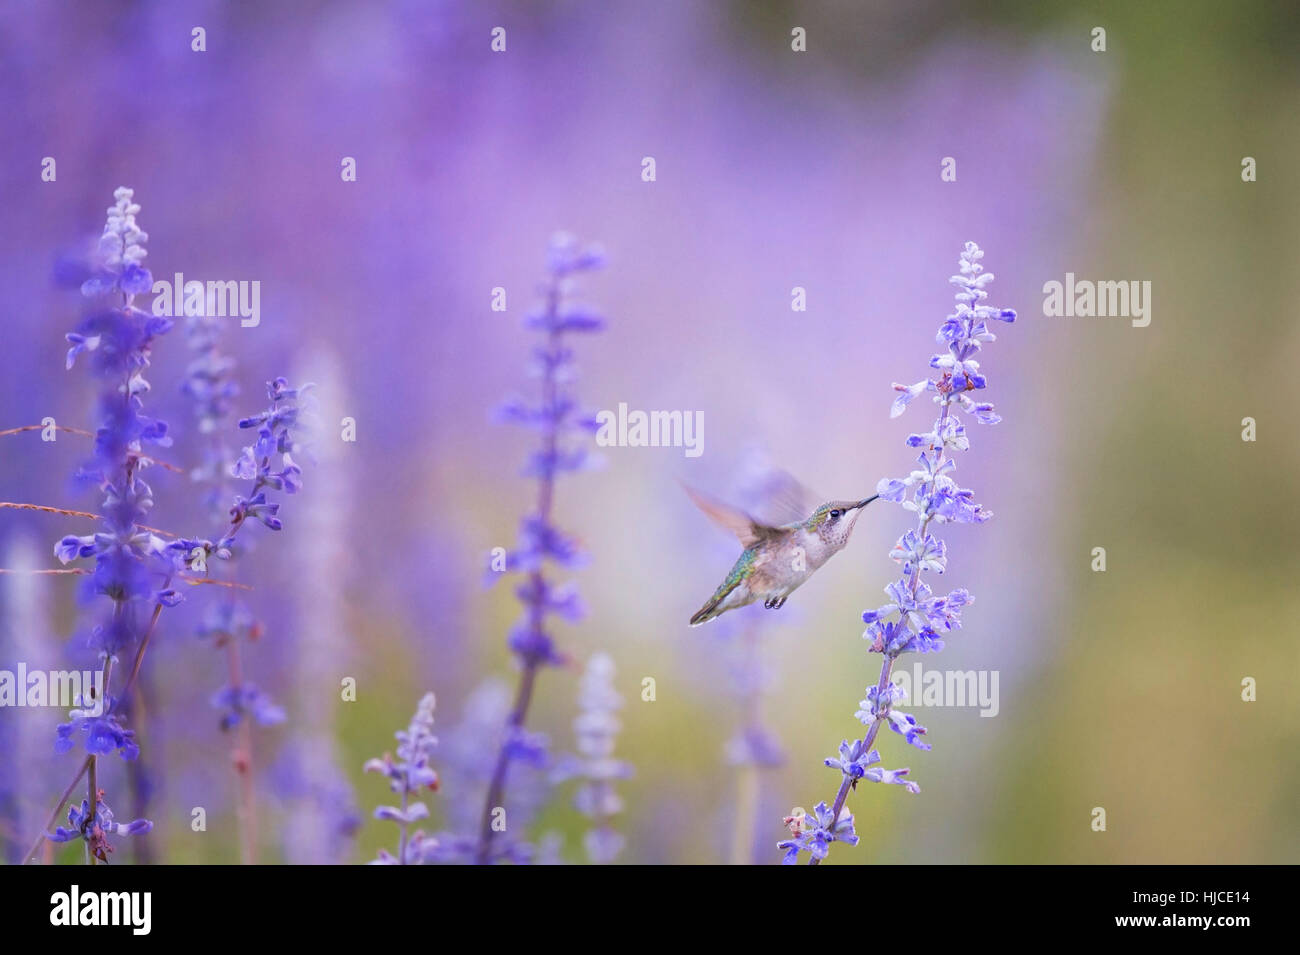 A female Ruby-throated Hummingbird feeds on some purple flowers early in the morning before the sun has even started - Stock Image